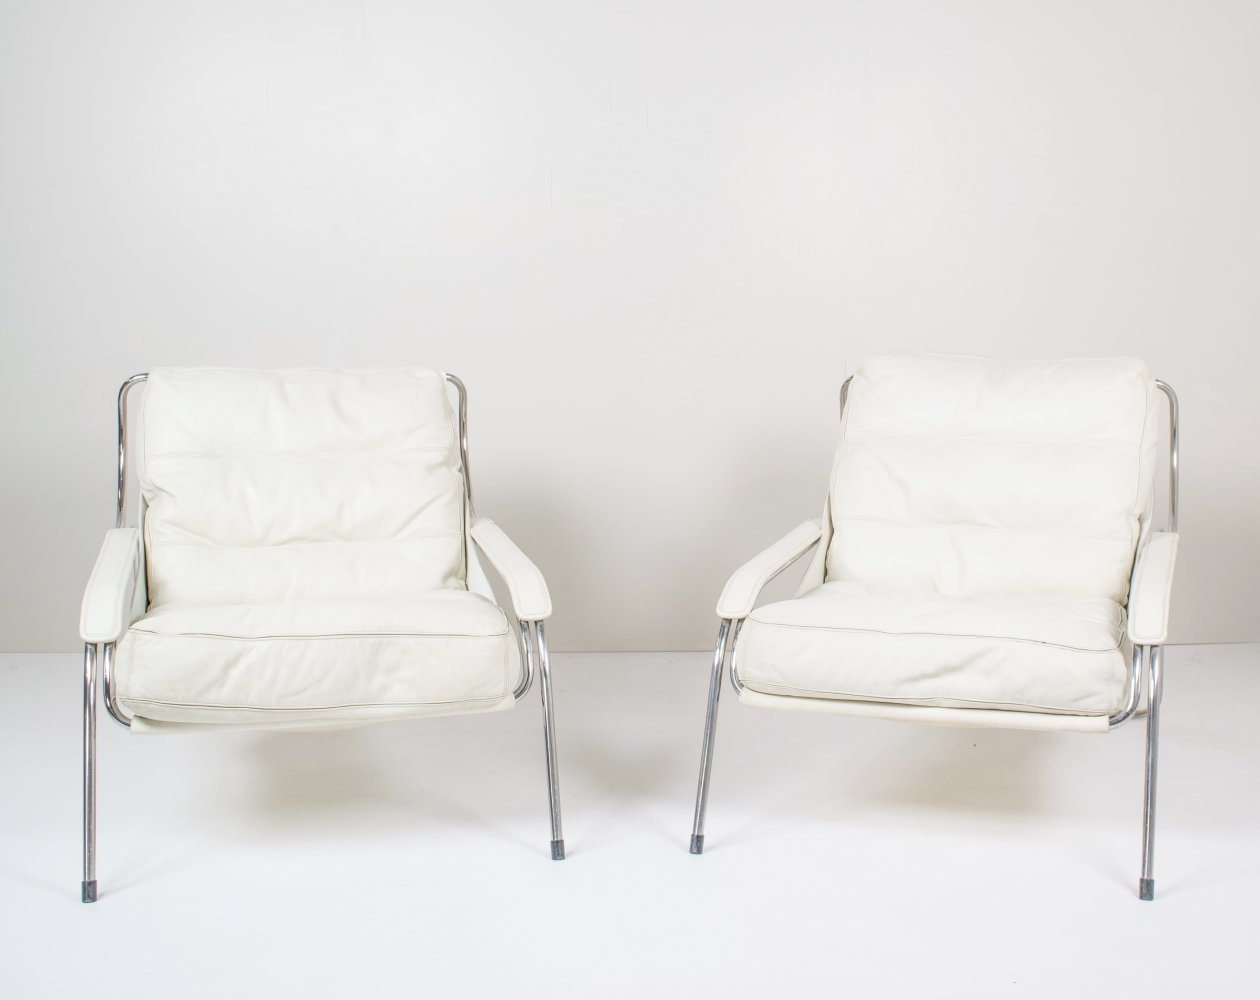 Pair of Marco Zanuso Maggiolina White Leather Chairs by Zanotta, Italy